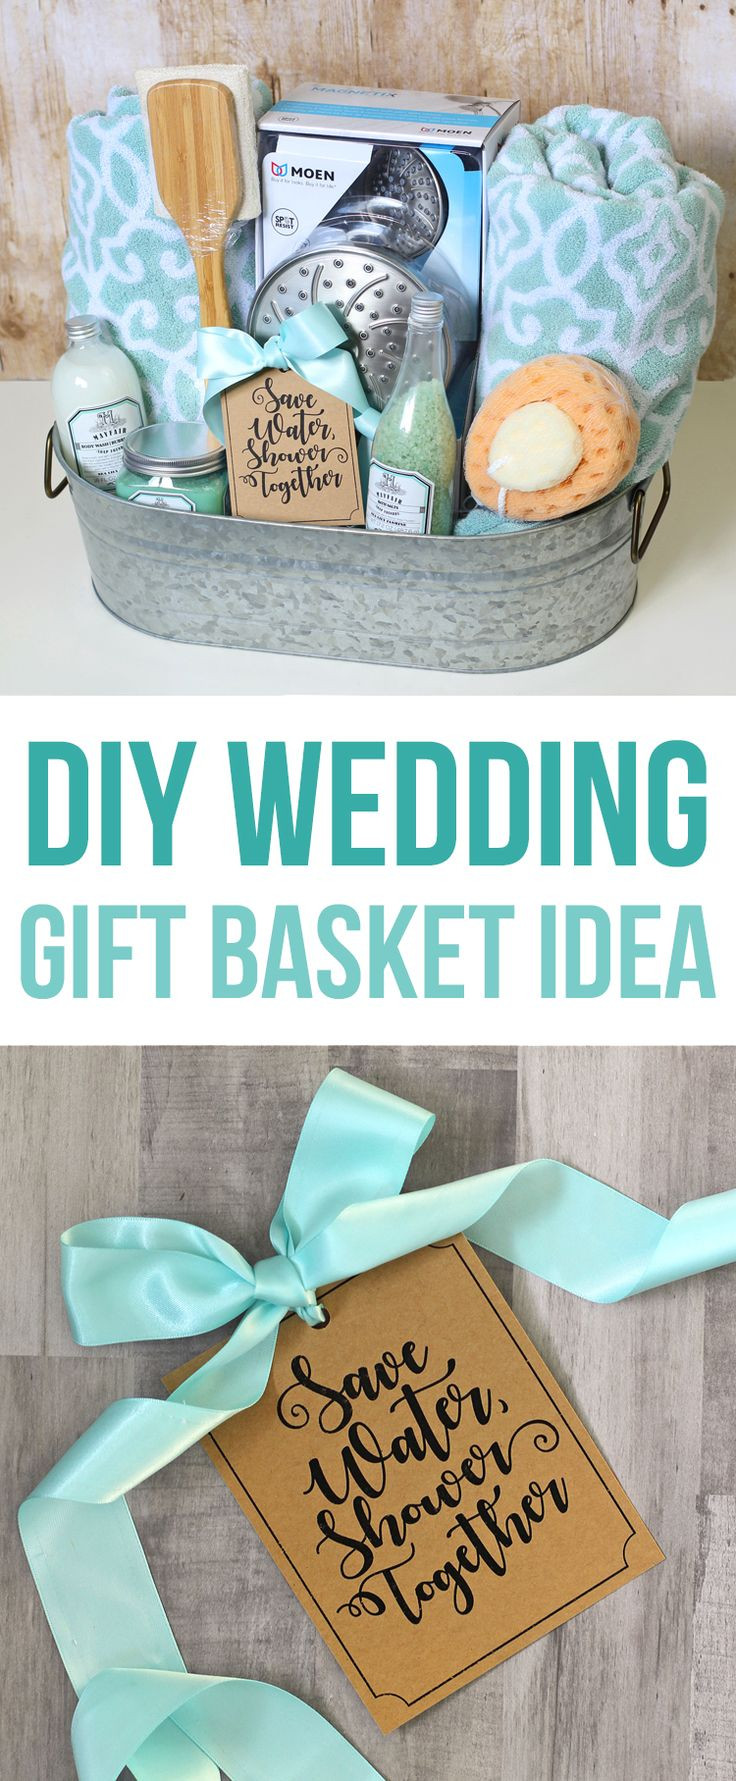 Best ideas about Gift Ideas For A Wedding . Save or Pin Best 25 Luxury shower ideas on Pinterest Now.